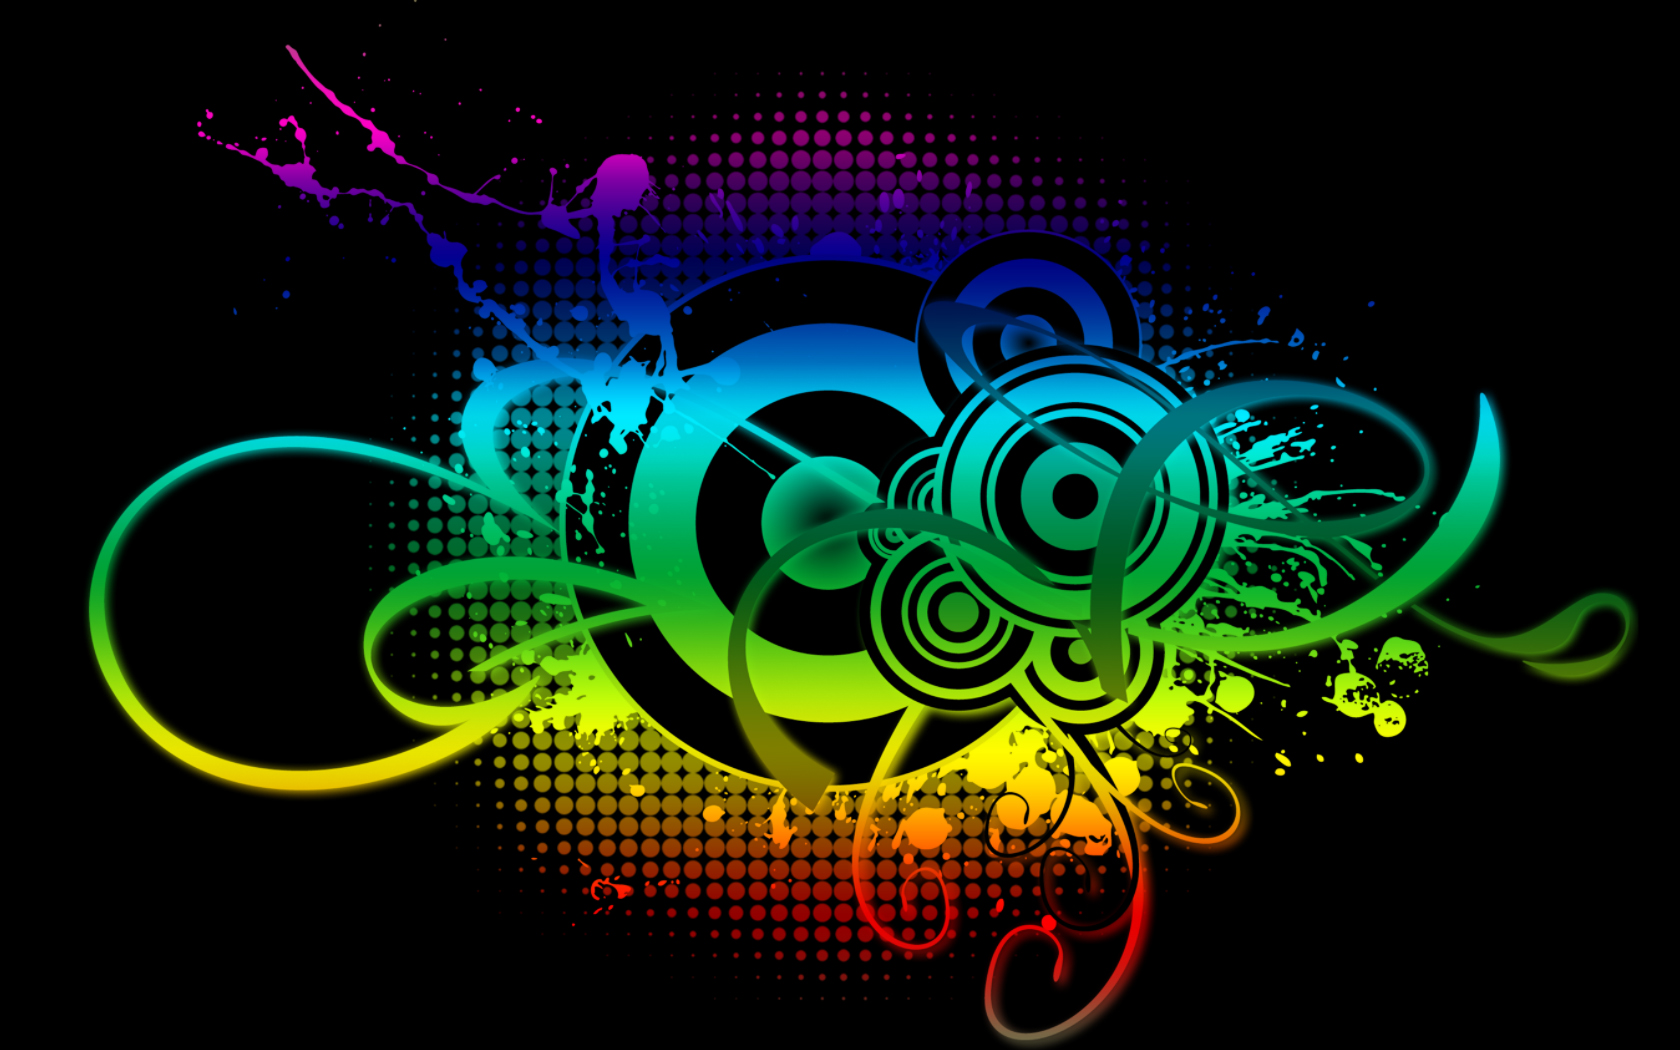 Music Abstract Backgrounds: Abstract Music By Nabster18 On DeviantArt